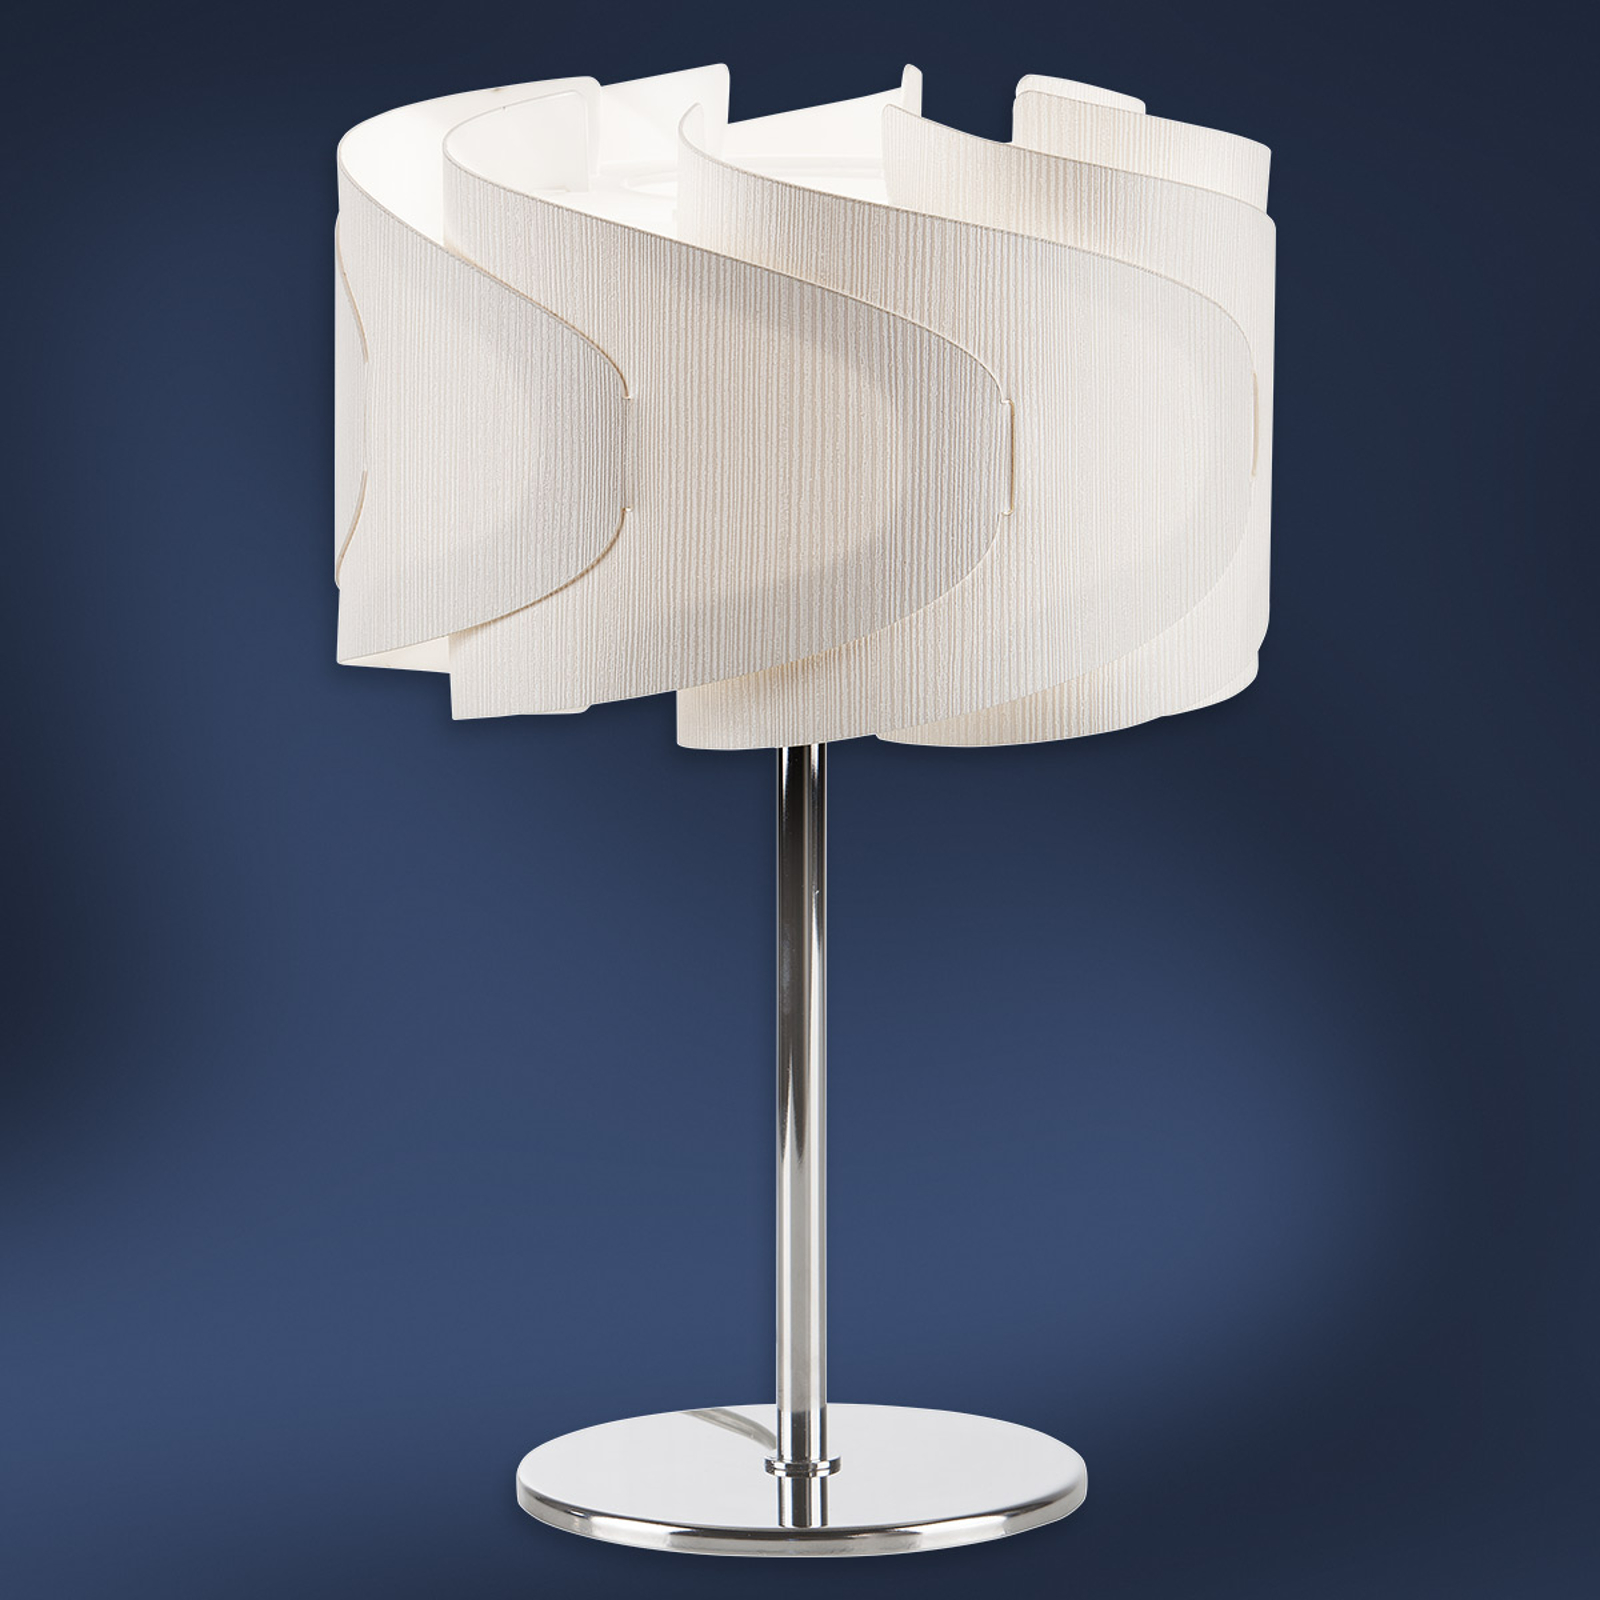 Table lamp Lumetto Ellix in wood finish_1056078_1